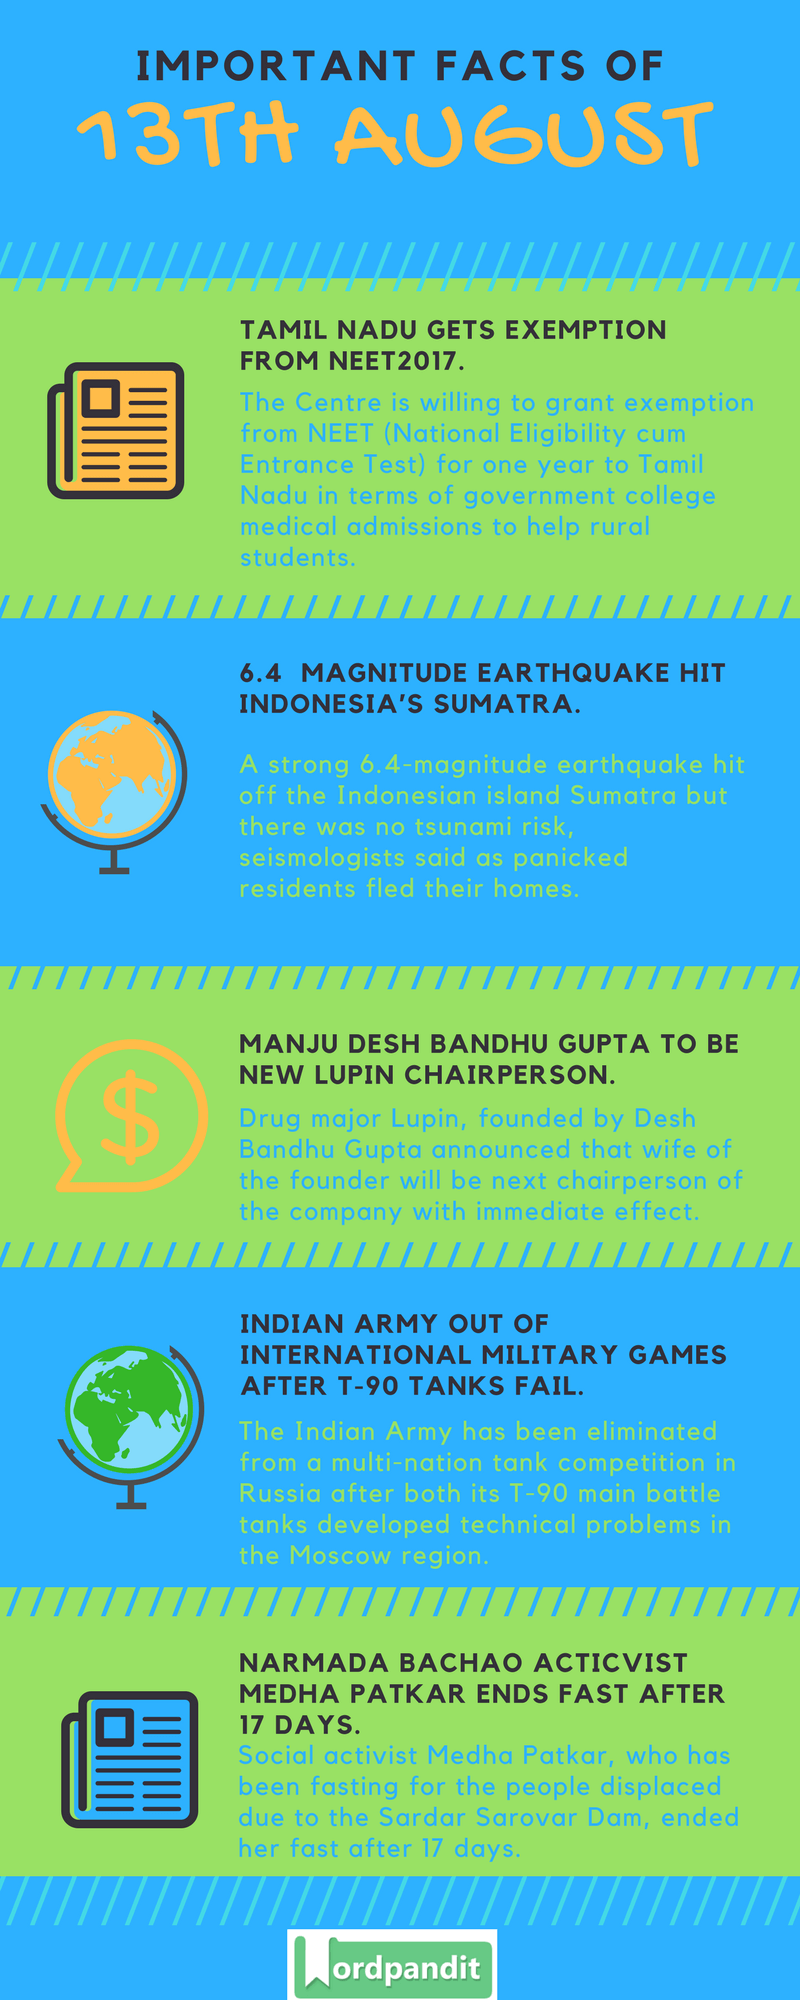 Daily-Current-Affairs-13-august-2017-Current-Affairs-Quiz-august-13-2017-Current-Affairs-Infographic